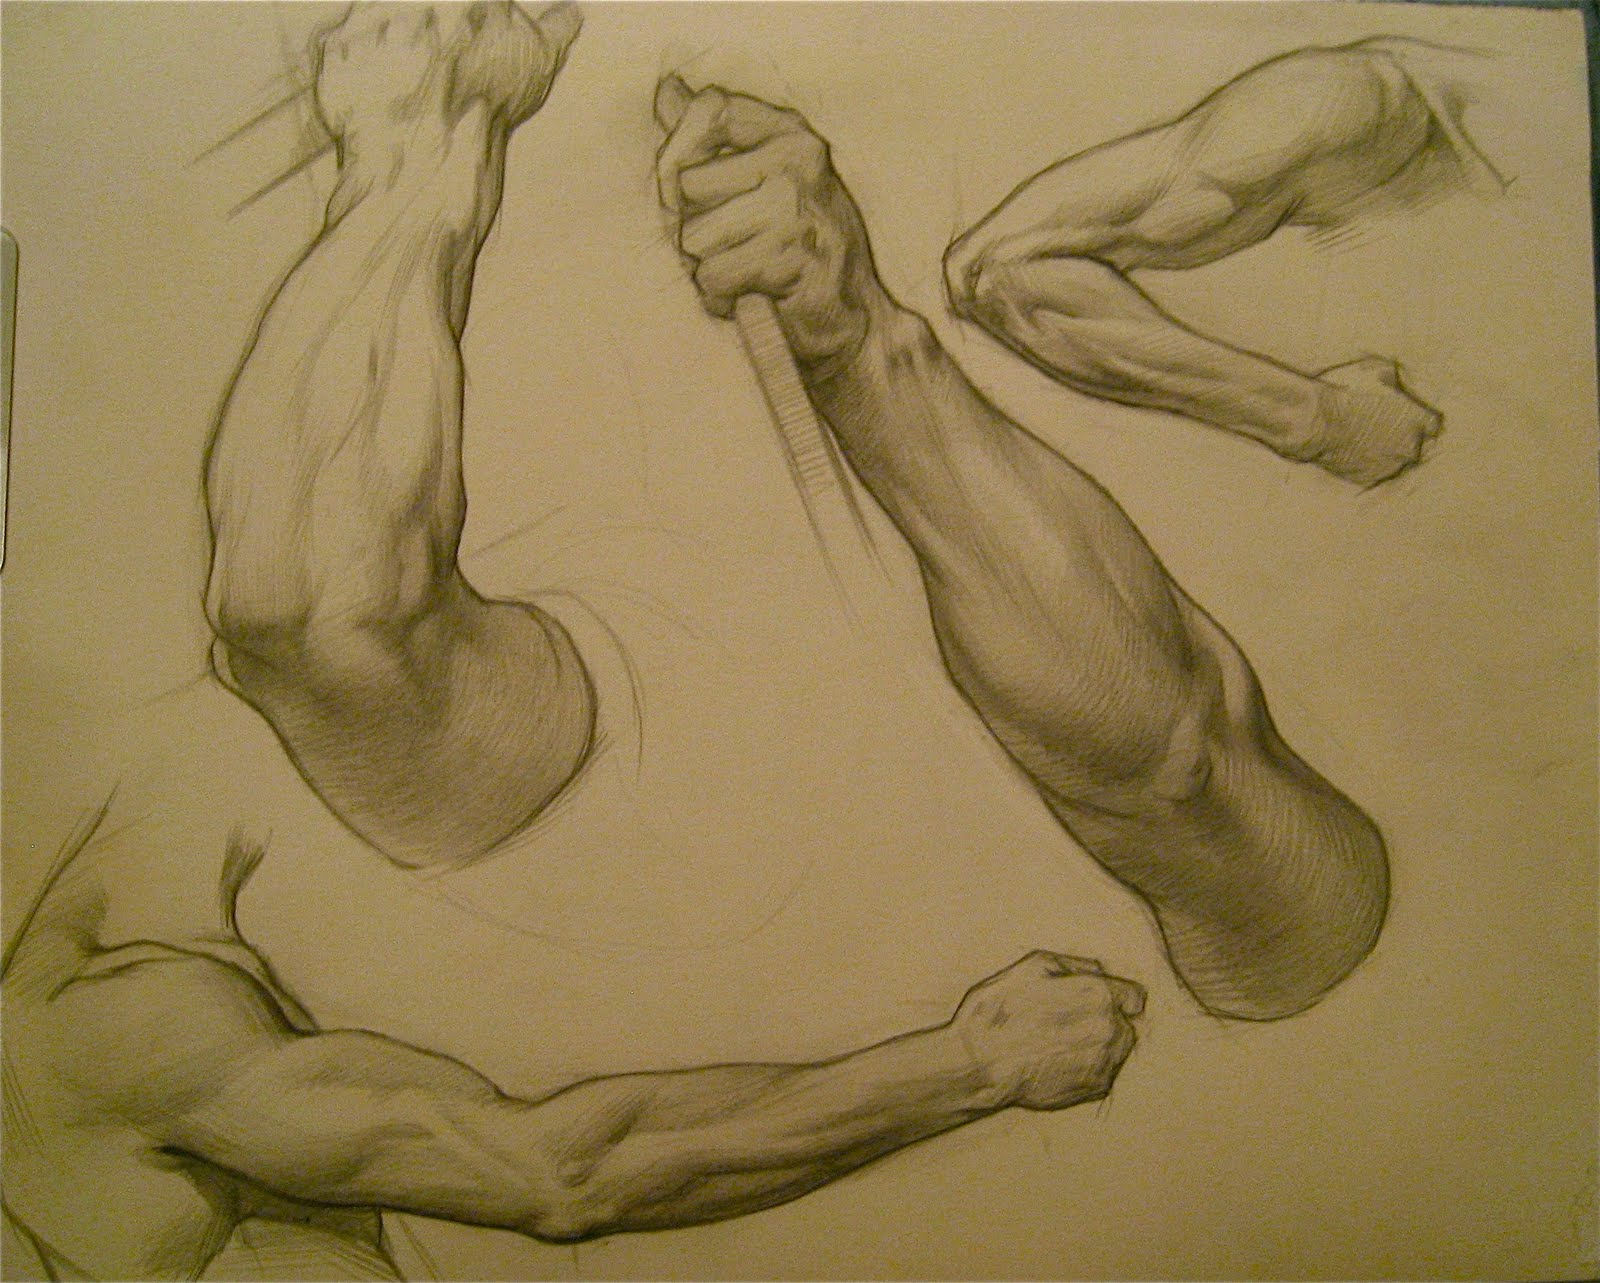 Artists who draw human anatomy